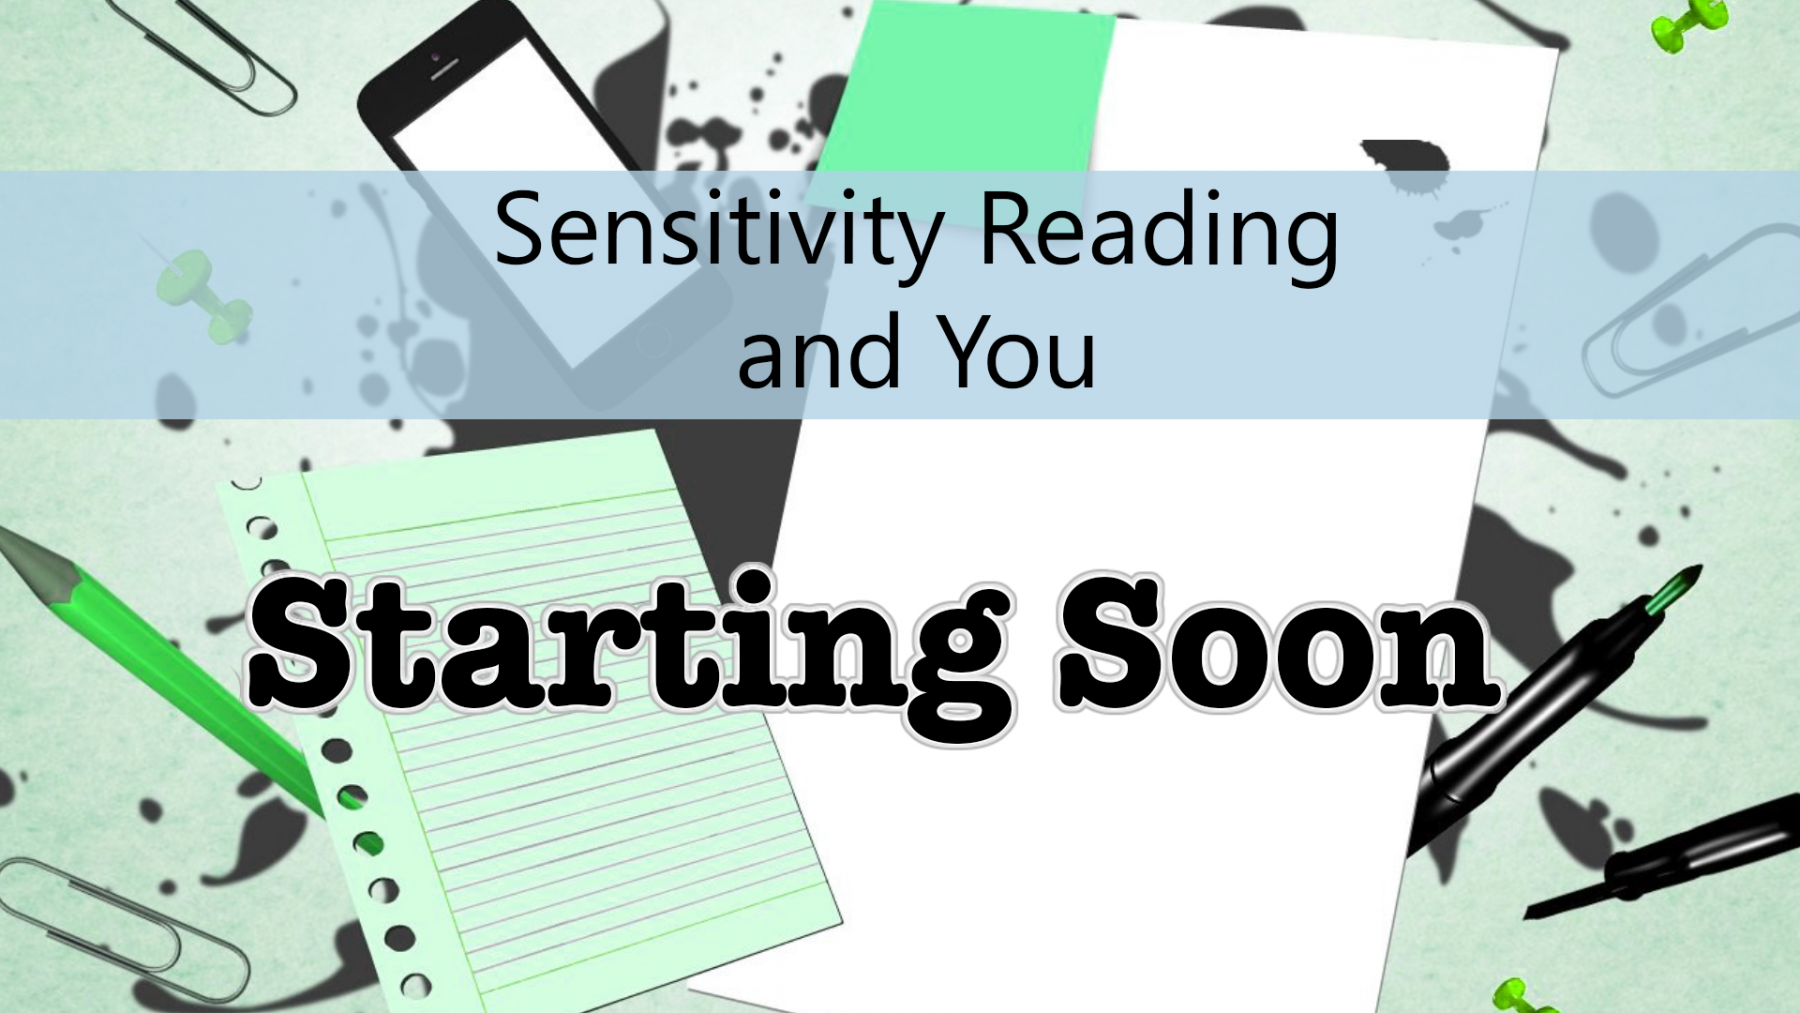 Sensitivity Reading seminar - Intro screen